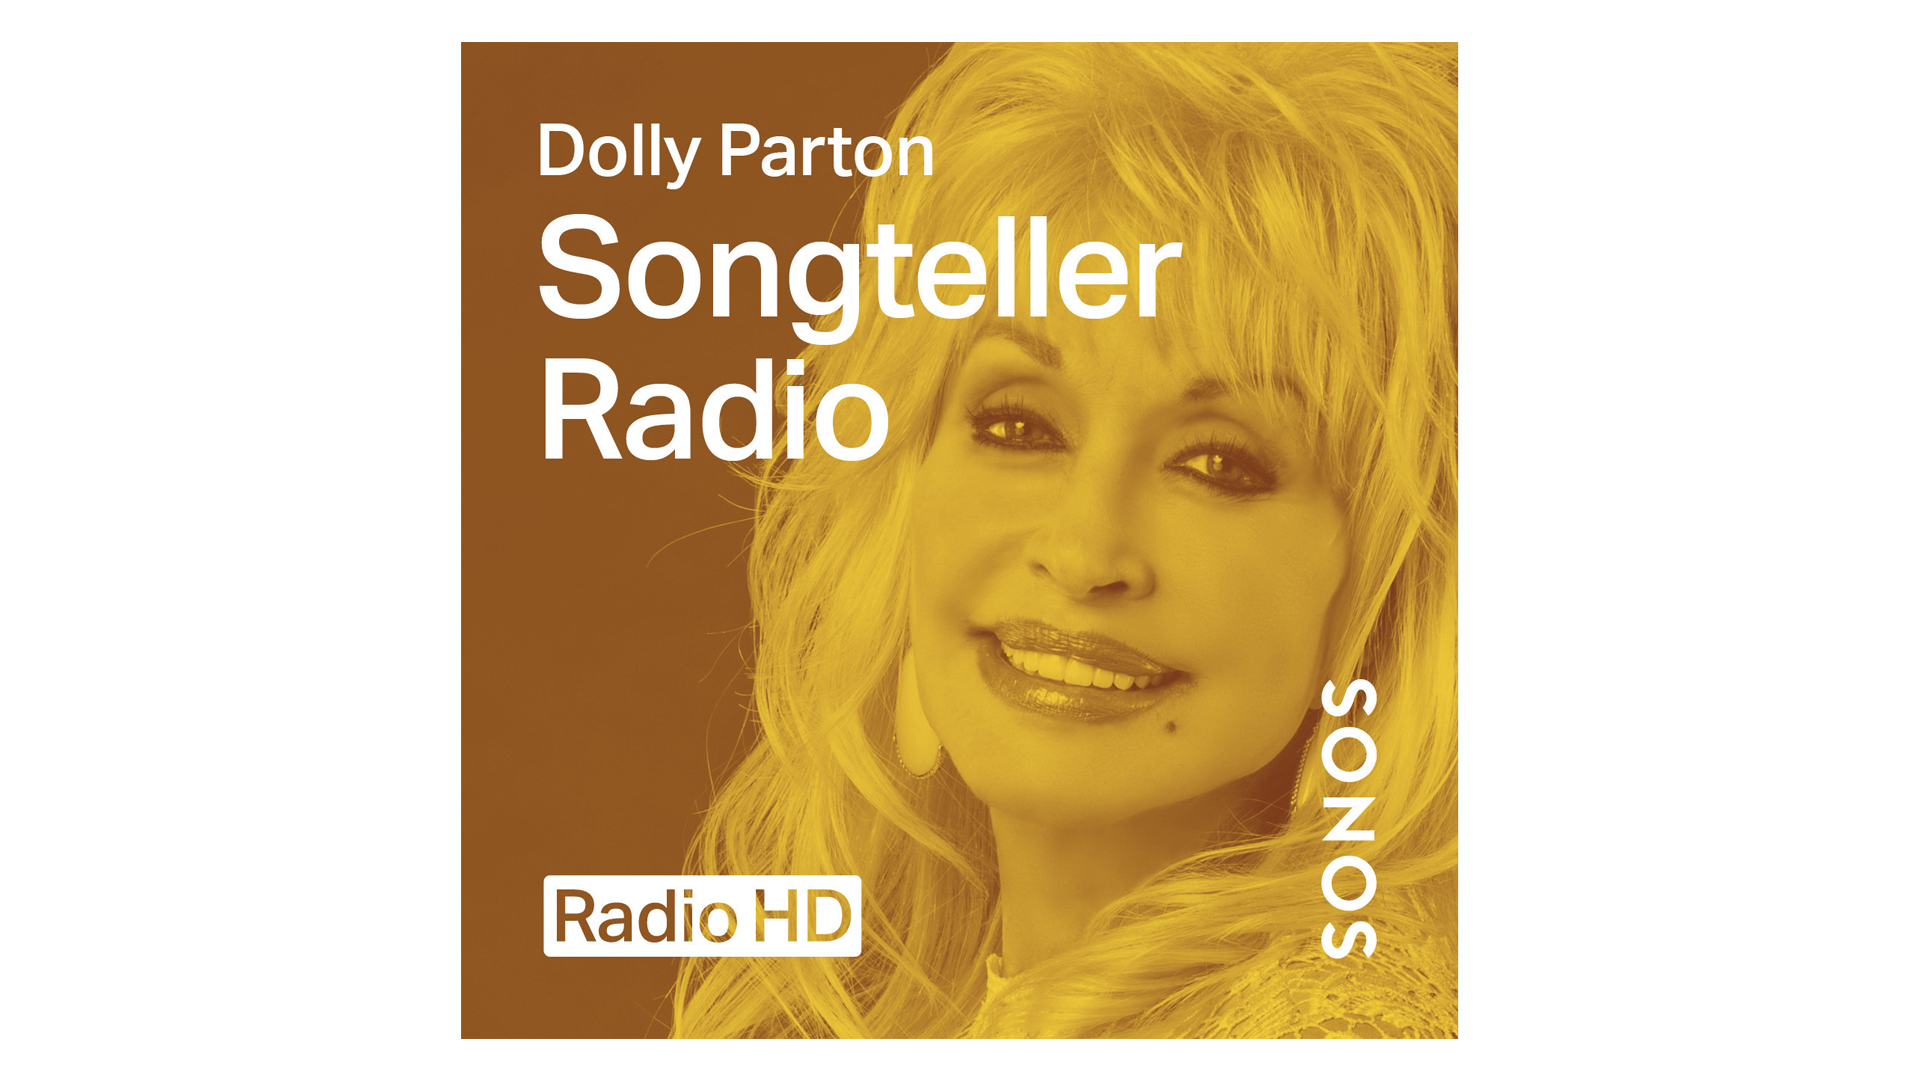 The banner for Dolly Parton's 'Songteller Radio' show.